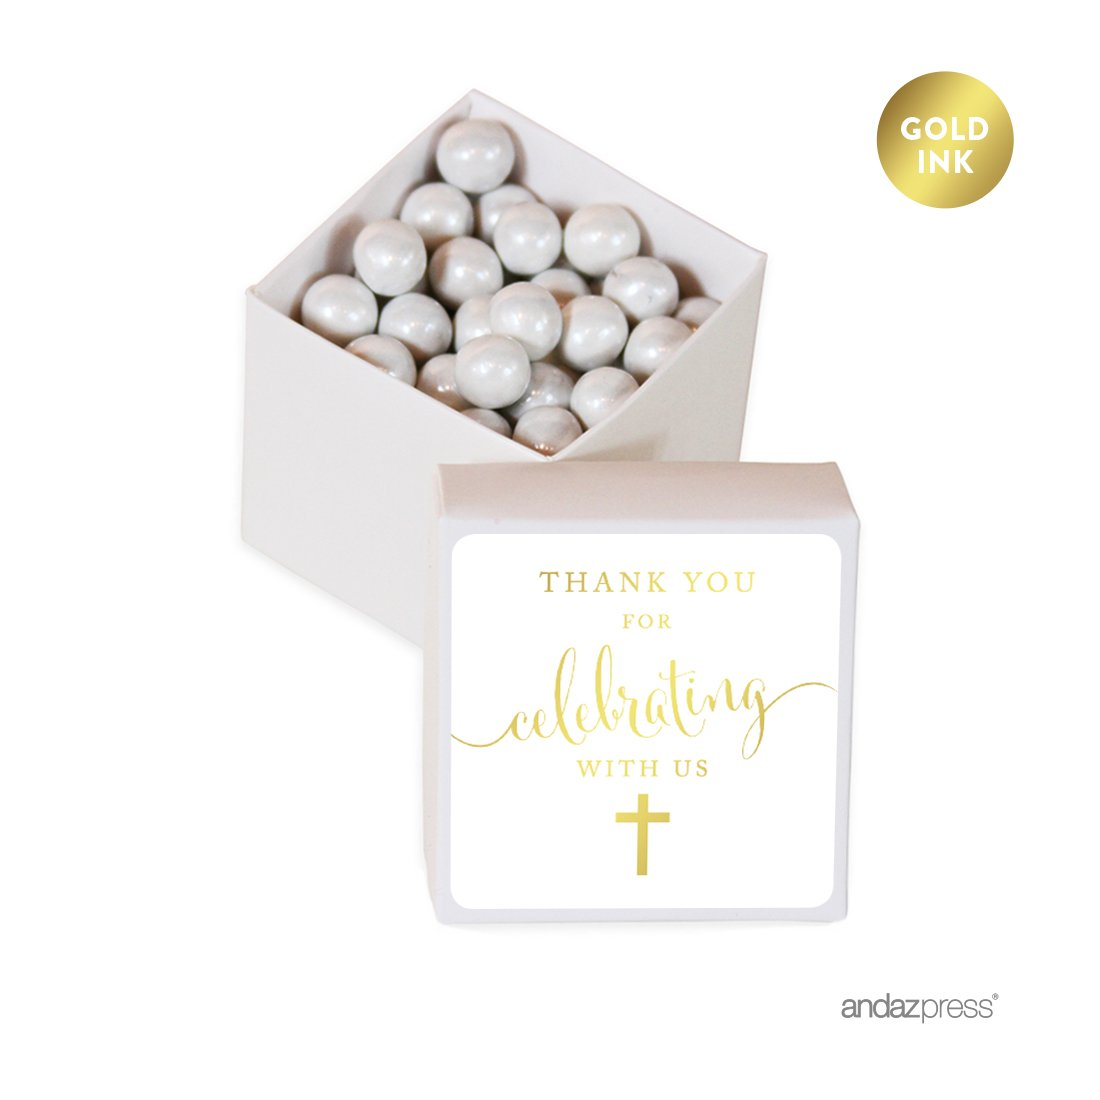 For Religious Baptism Metallic Gold Label with White Box Decorations Andaz Press Mini Square Party Favor Box DIY Kit 20-Pack Christening Party Favors Thank You for Celebrating With Us